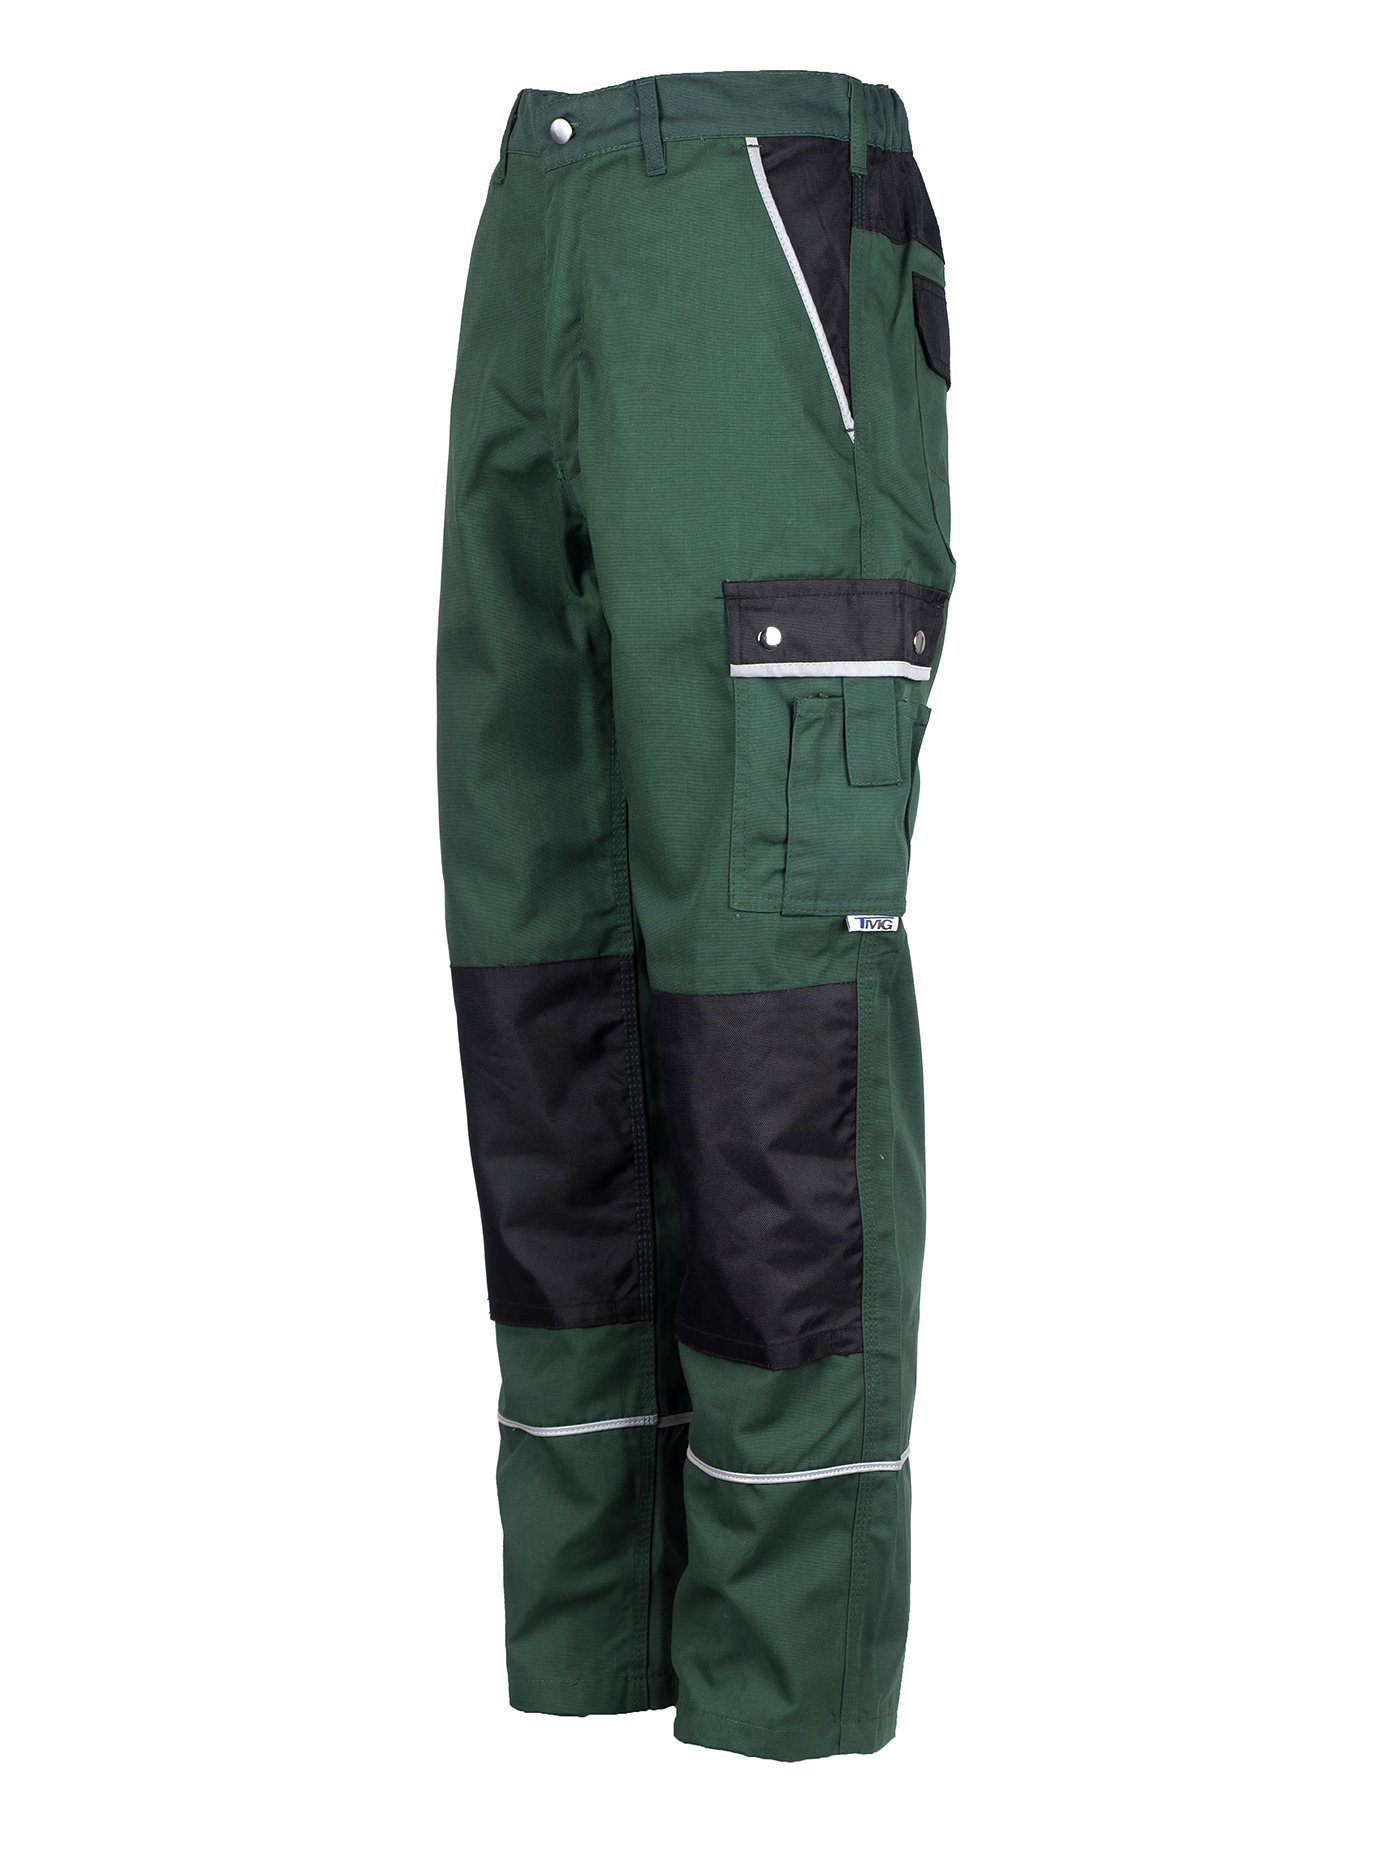 TMG Heavy Duty Cargo Work Trousers with Knee Pads Pockets 60 Green